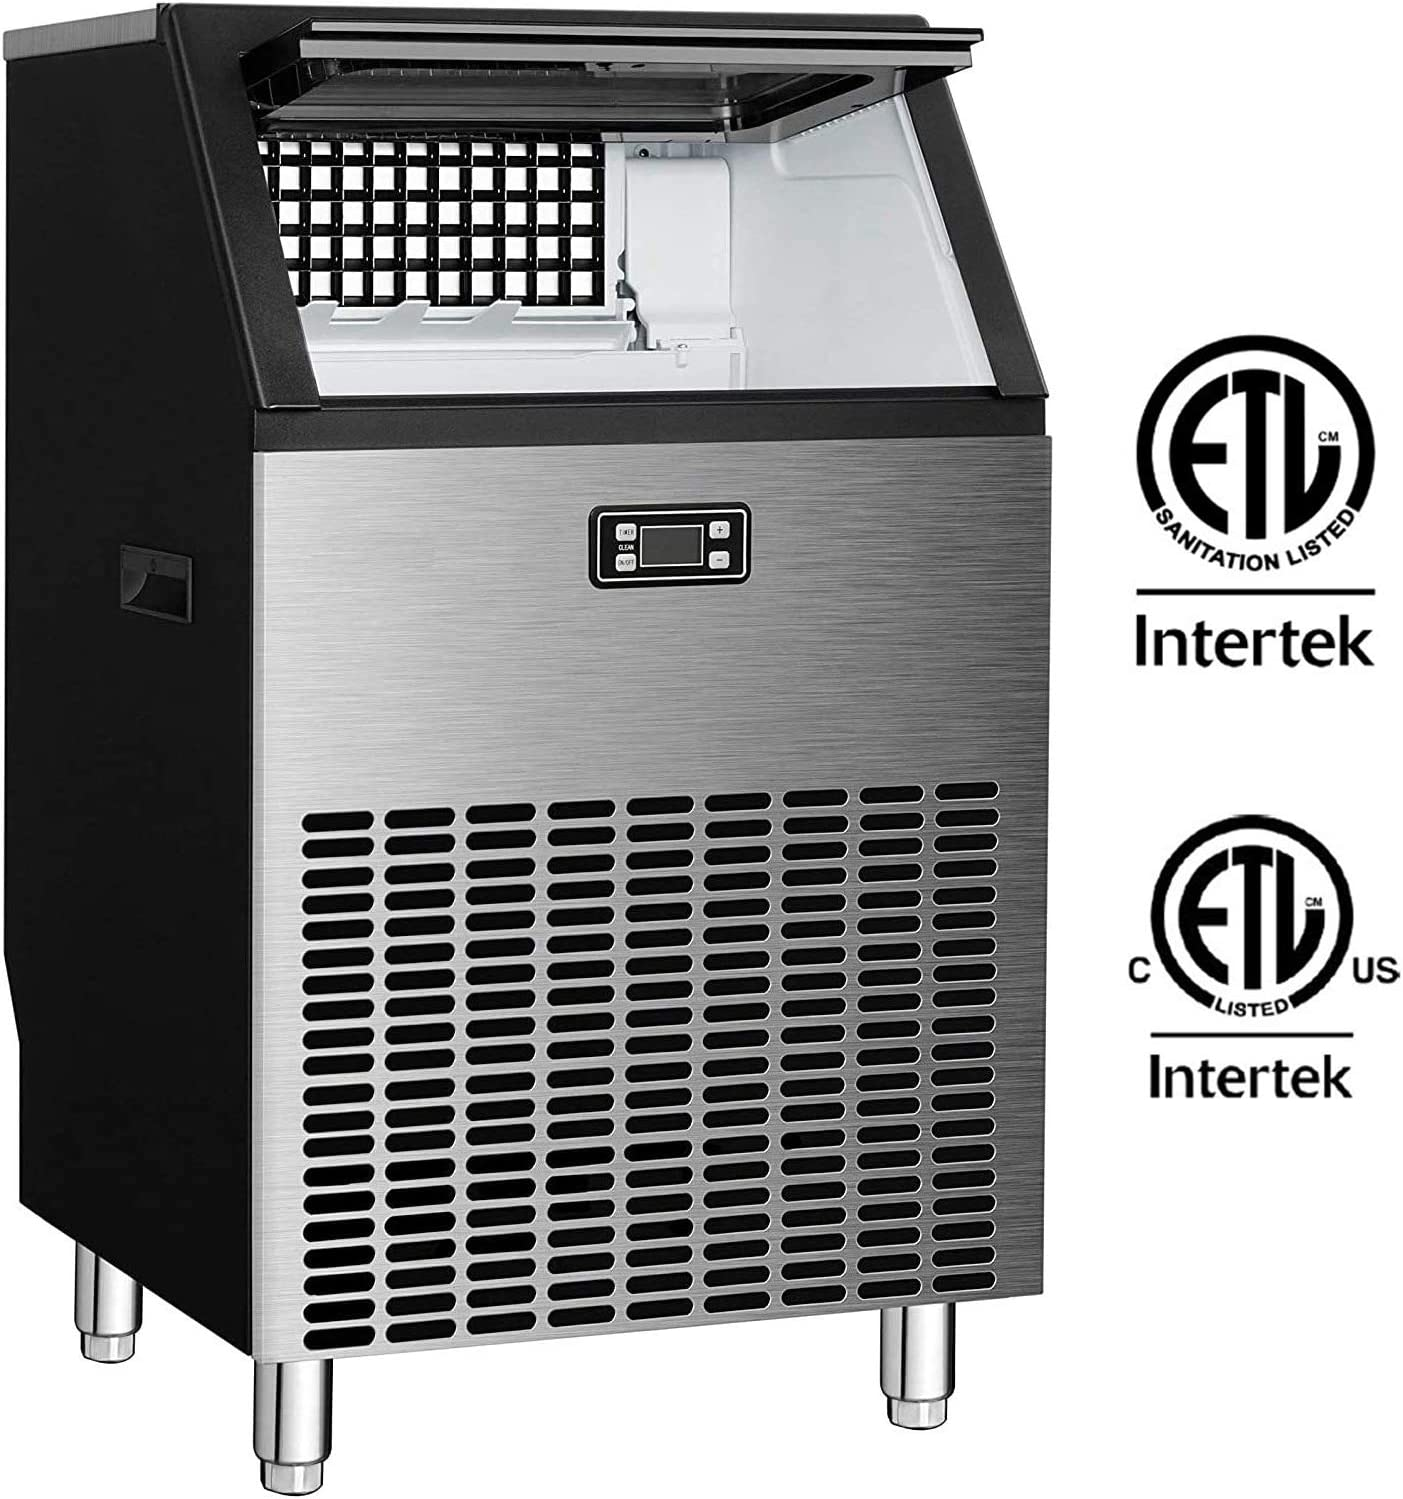 Northair Commercial Ice Maker Machine 200lbs Ice in 24hrs with 48 lbs Storage Capacity Stainless Steel Free-Standing Ice Maker Machine with LCD Display, Ideal For Restaurant, Bar, Coffee Shop